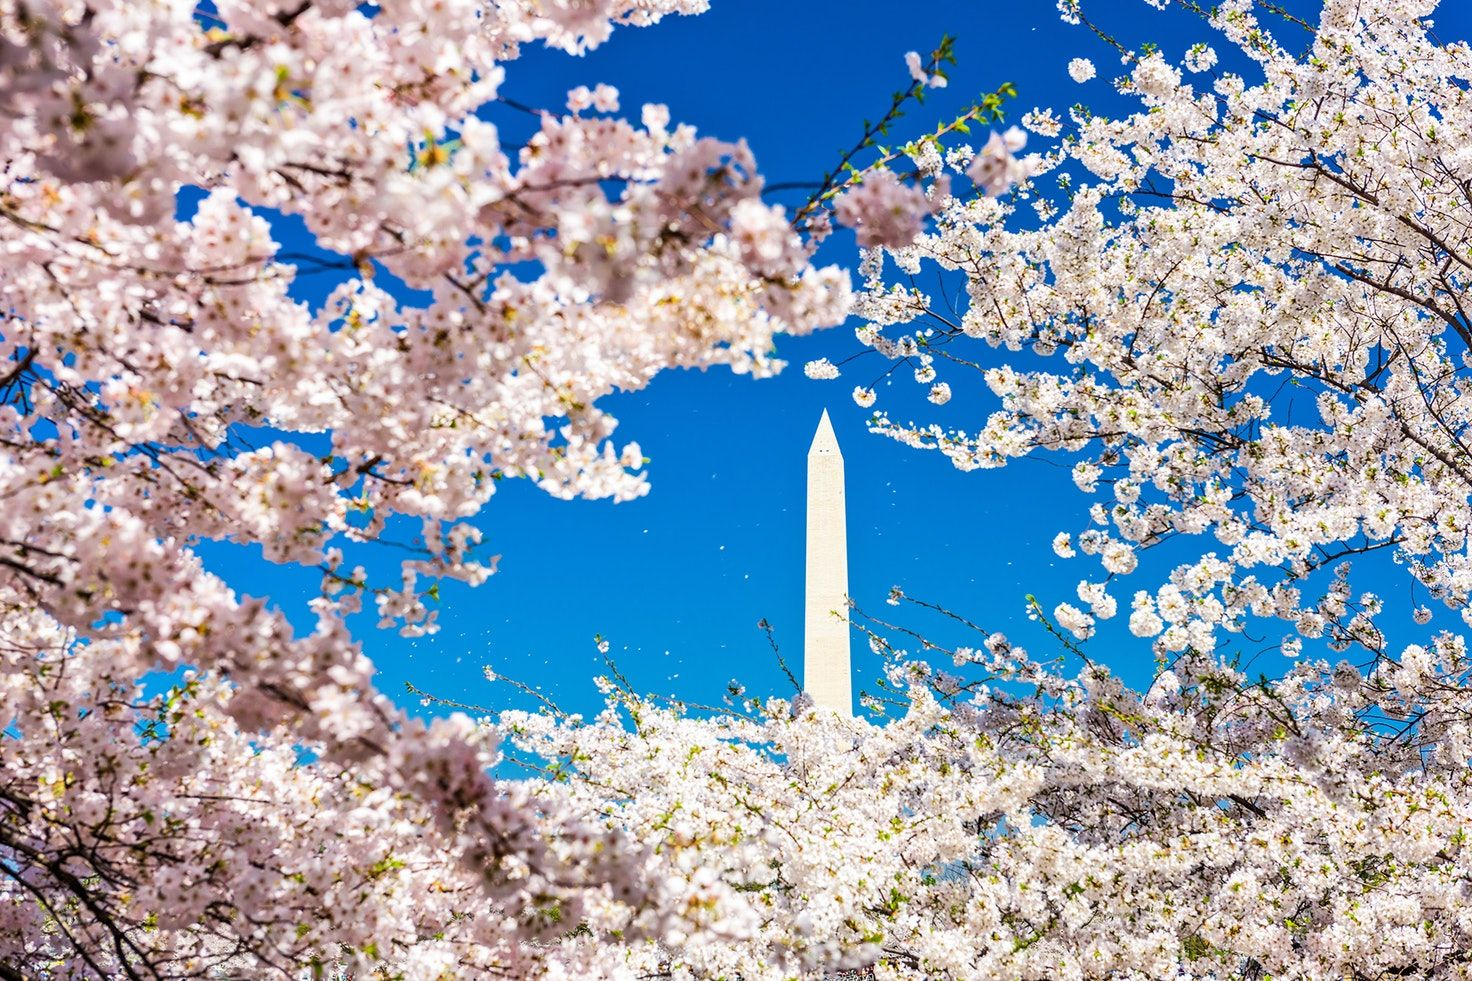 Washington D C S Cherry Blossom Bloom To Peak In April This Year Bloom Spring Photos Cherry Blossom